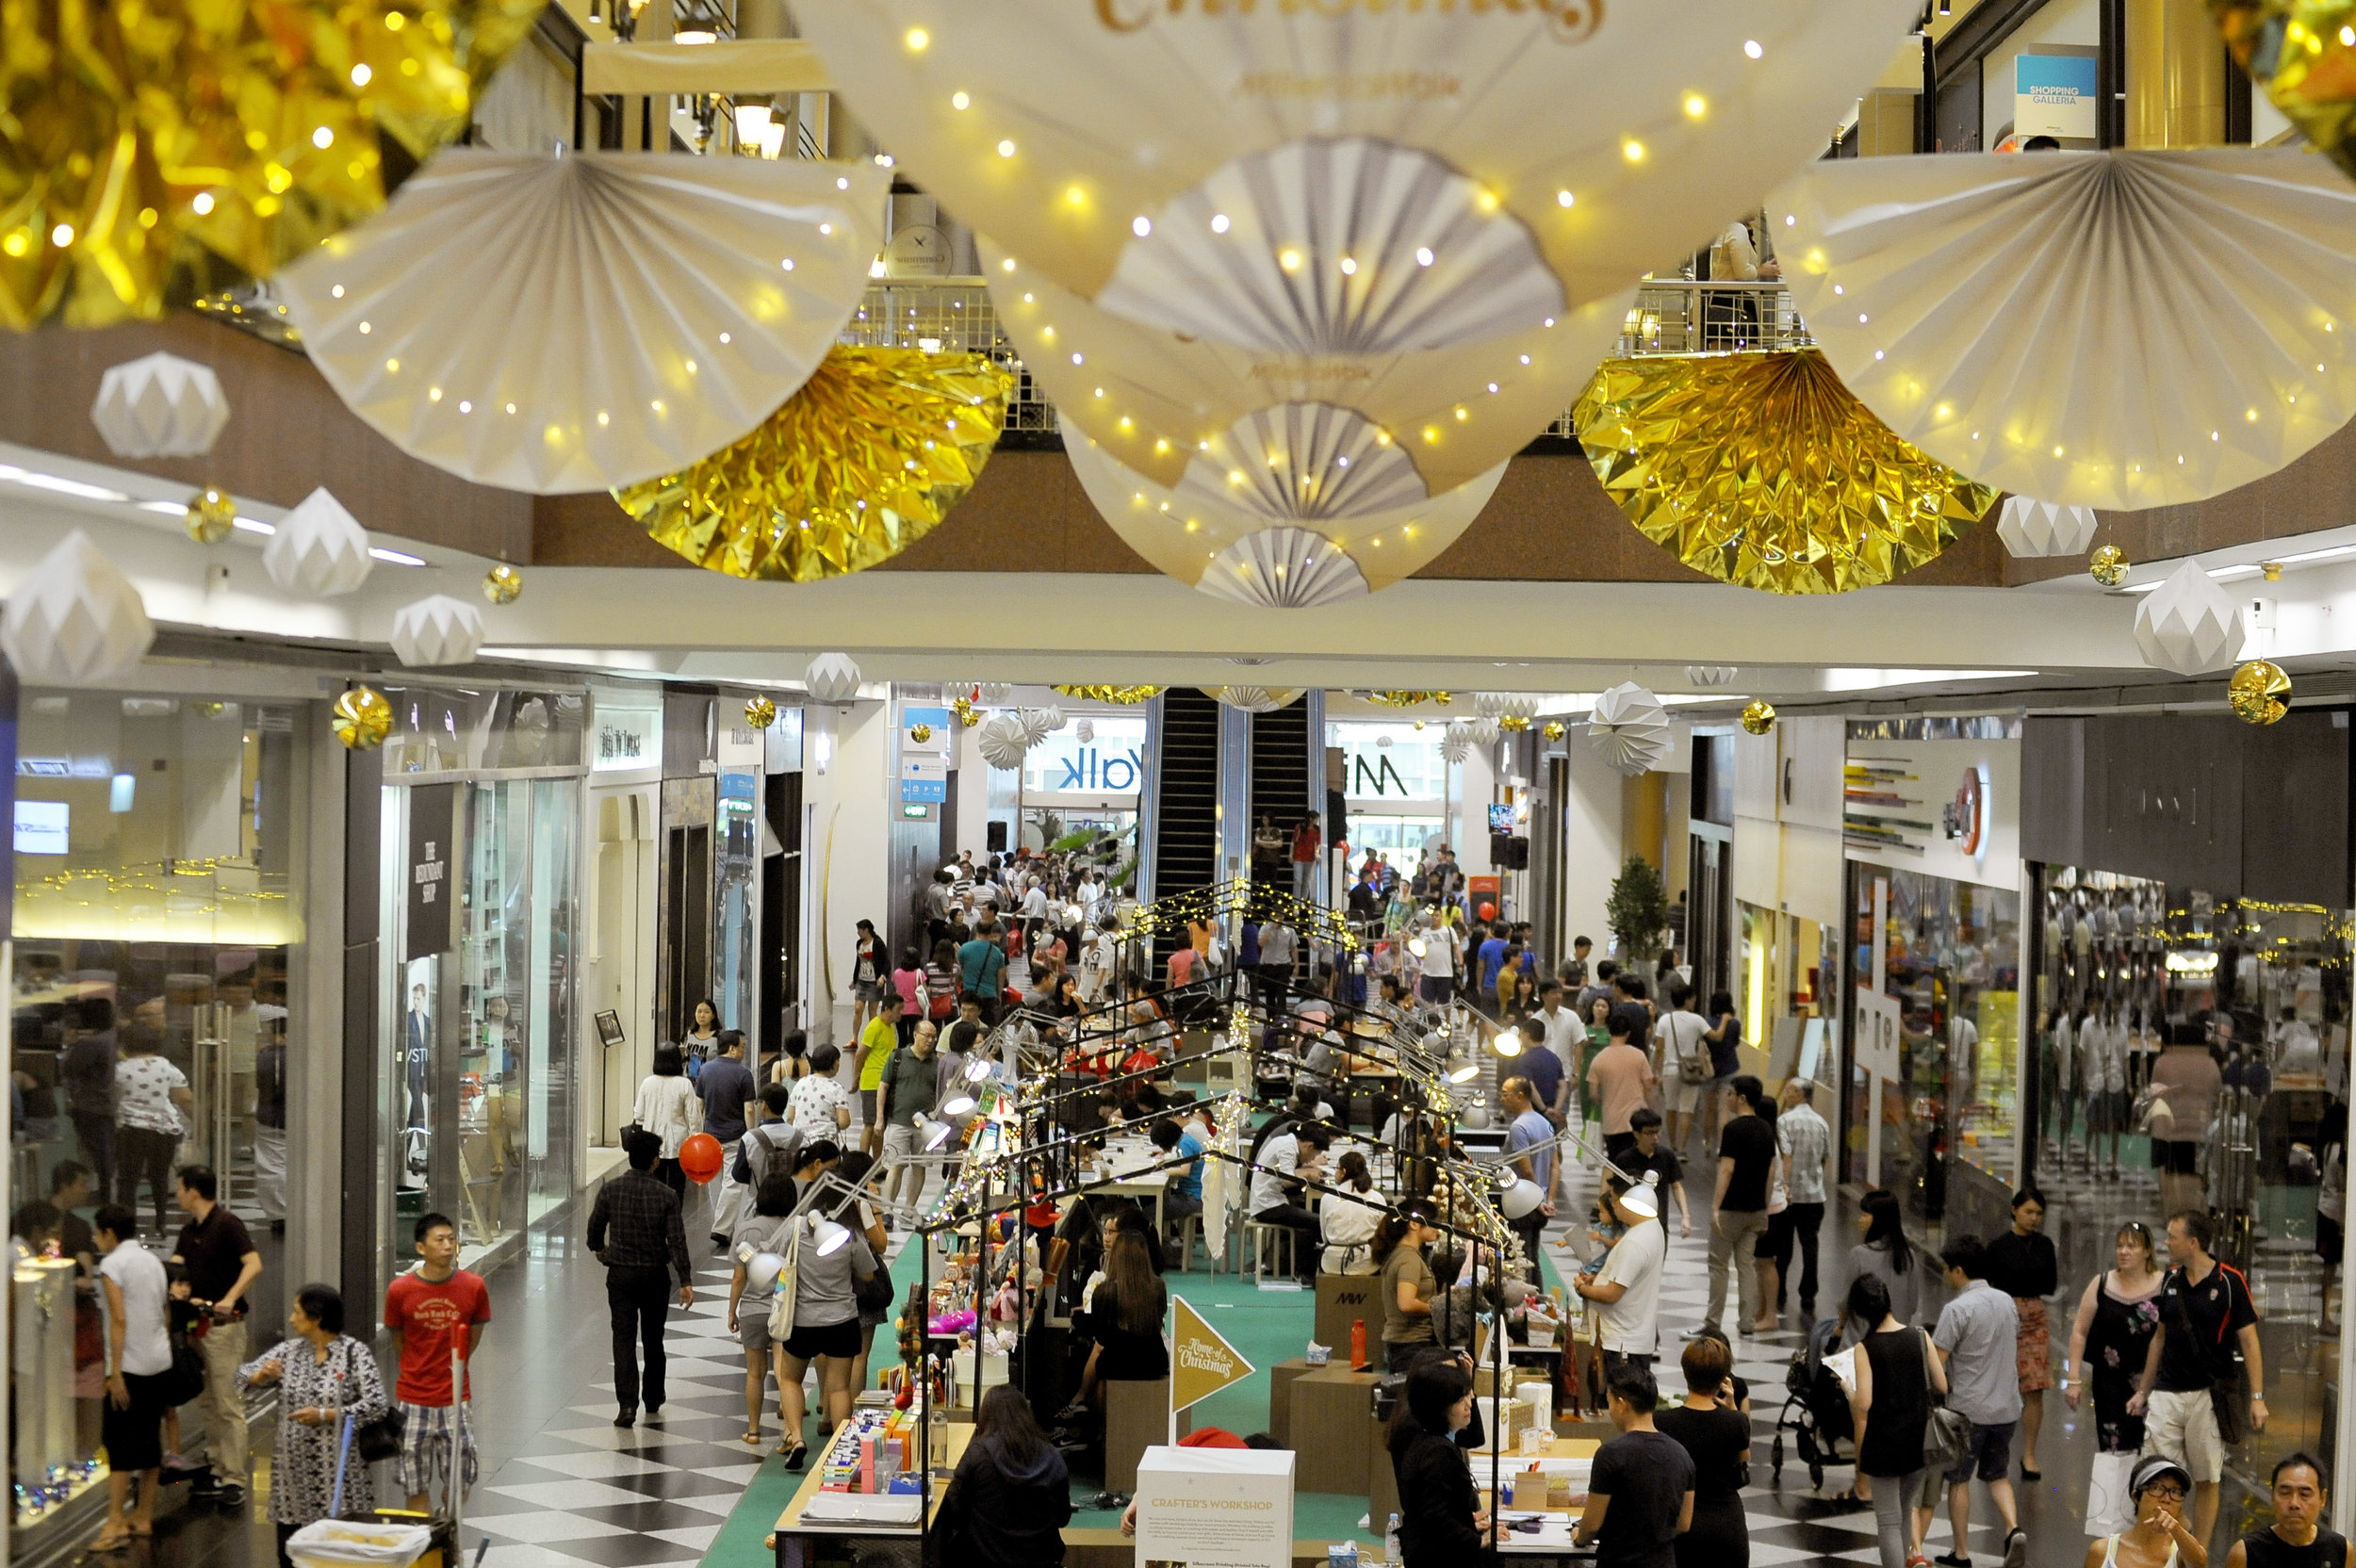 outeredit-millenia-walk-home-of-christmas-24-market